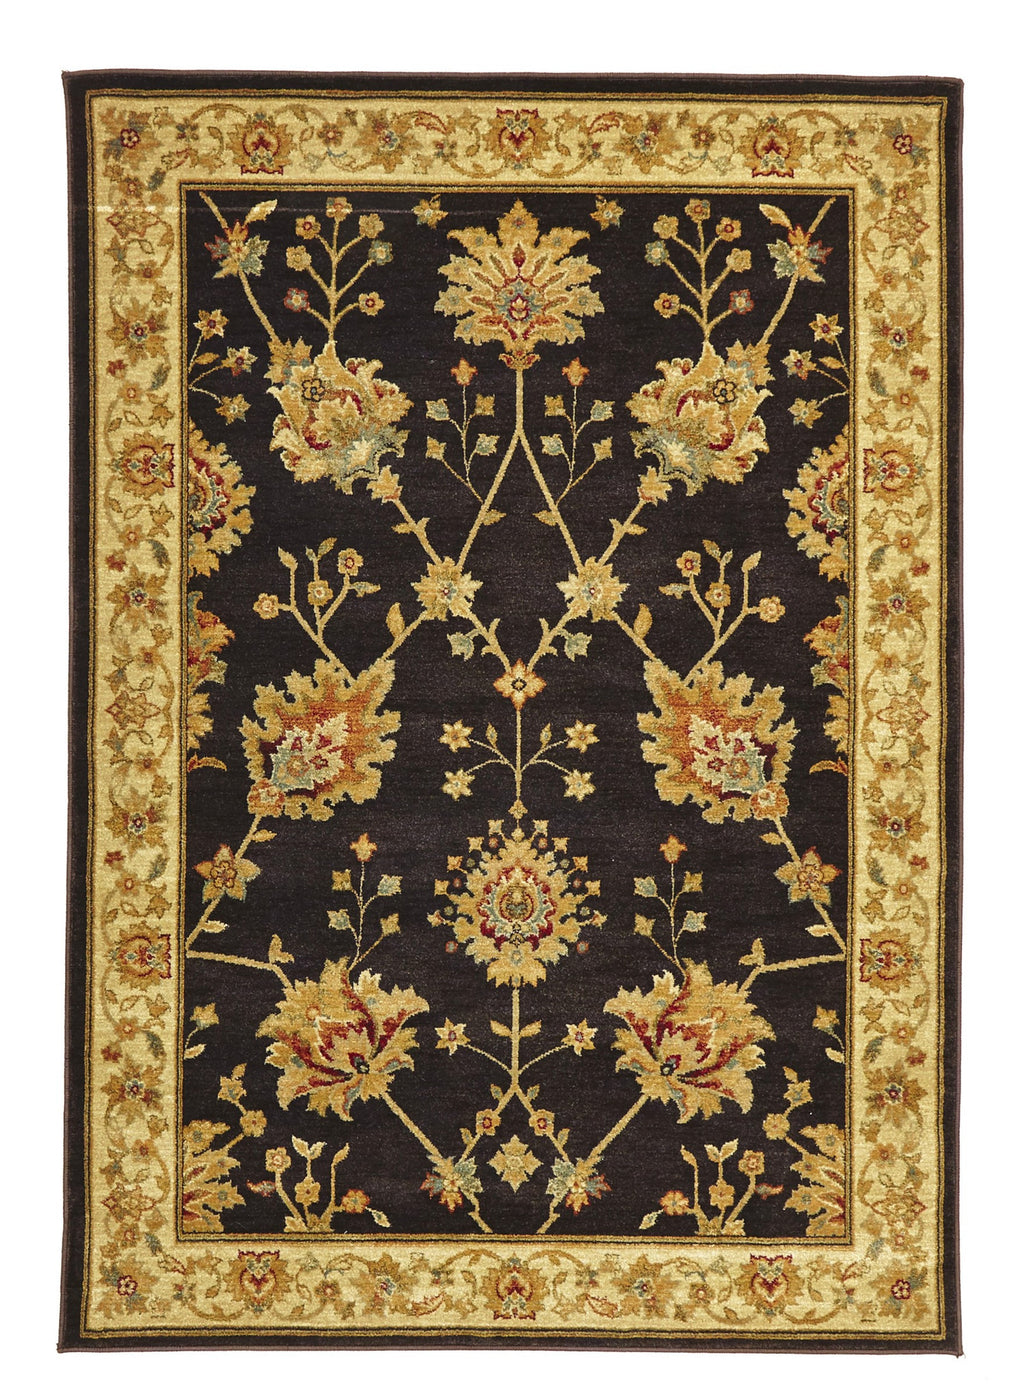 Byblos Classic Chobi Design Brown Rug - aladdinrugs - 1